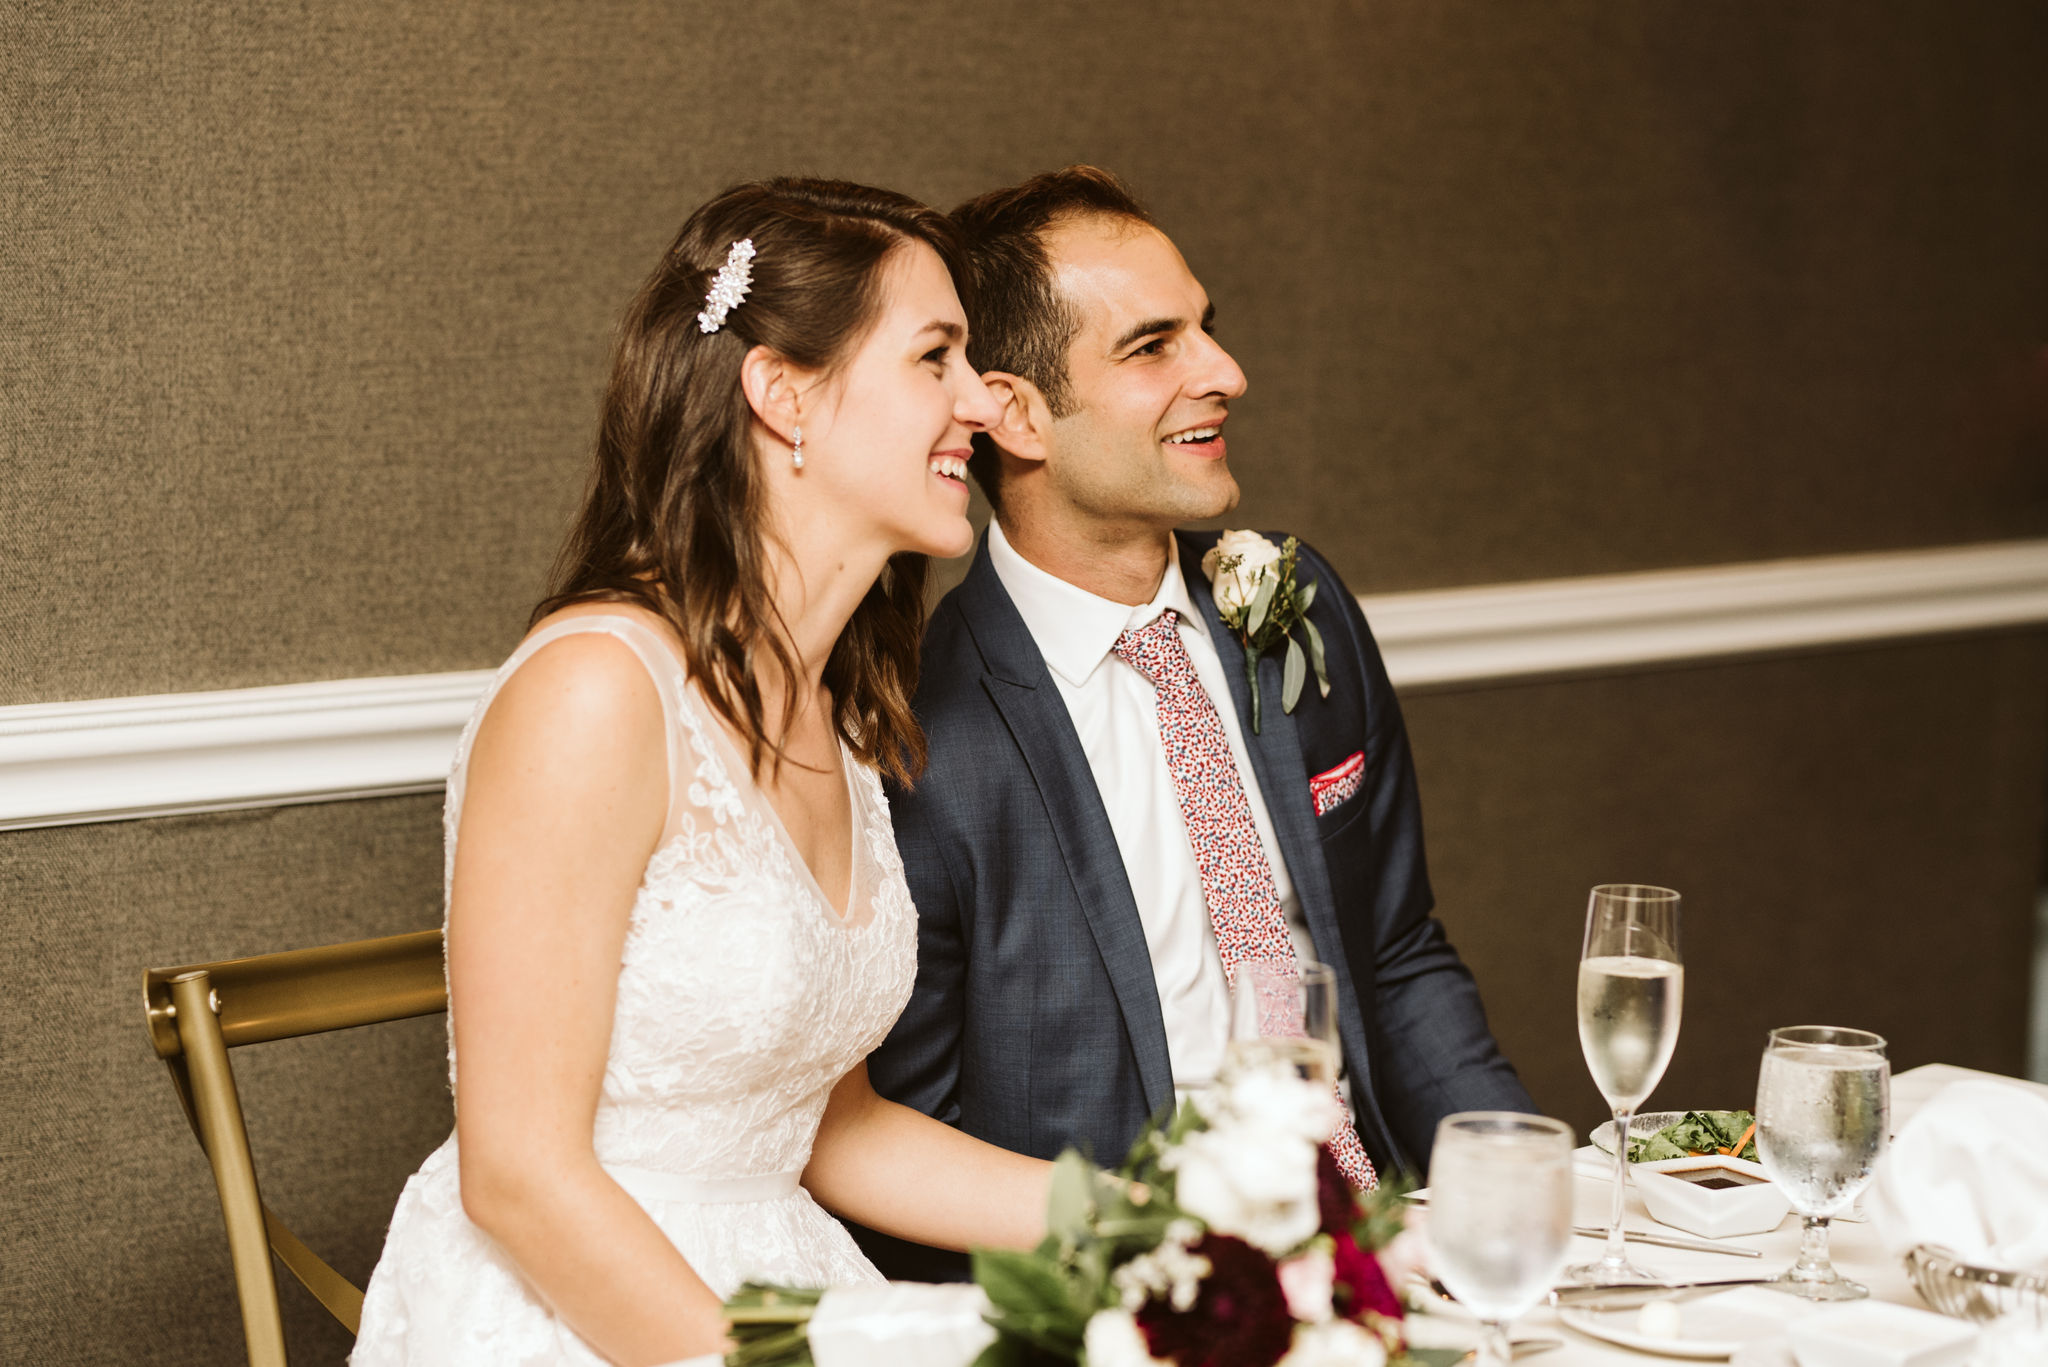 Phoenix Maryland, Baltimore Wedding Photographer, Eagle's Nest Country Club, Classic, Romantic, Spring, Bride and Groom Smiling Together at Head Table, Gaby Vinas Hair